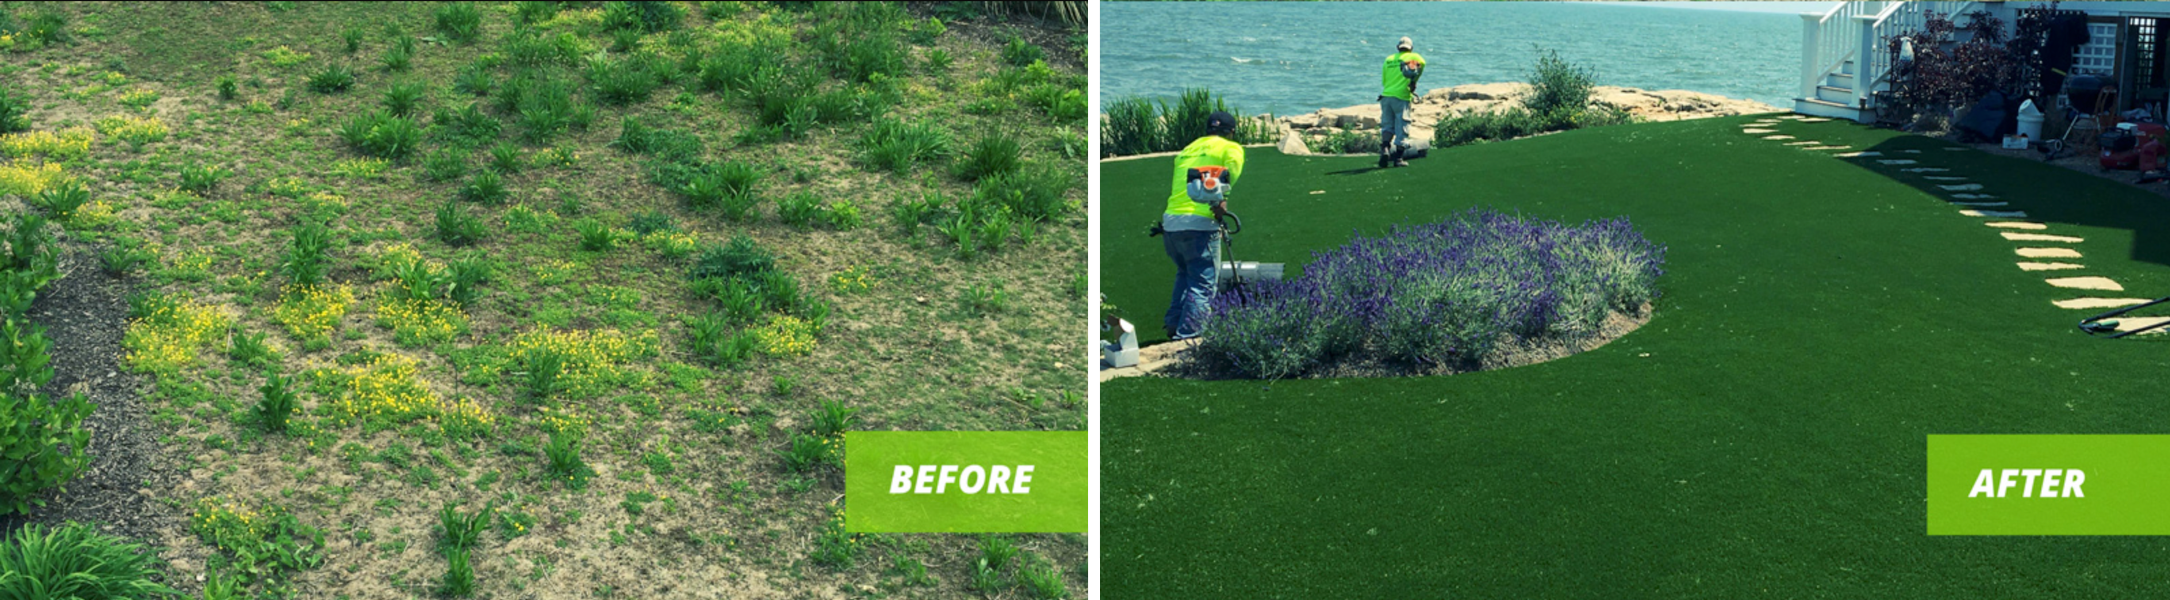 turf-before-after-ny